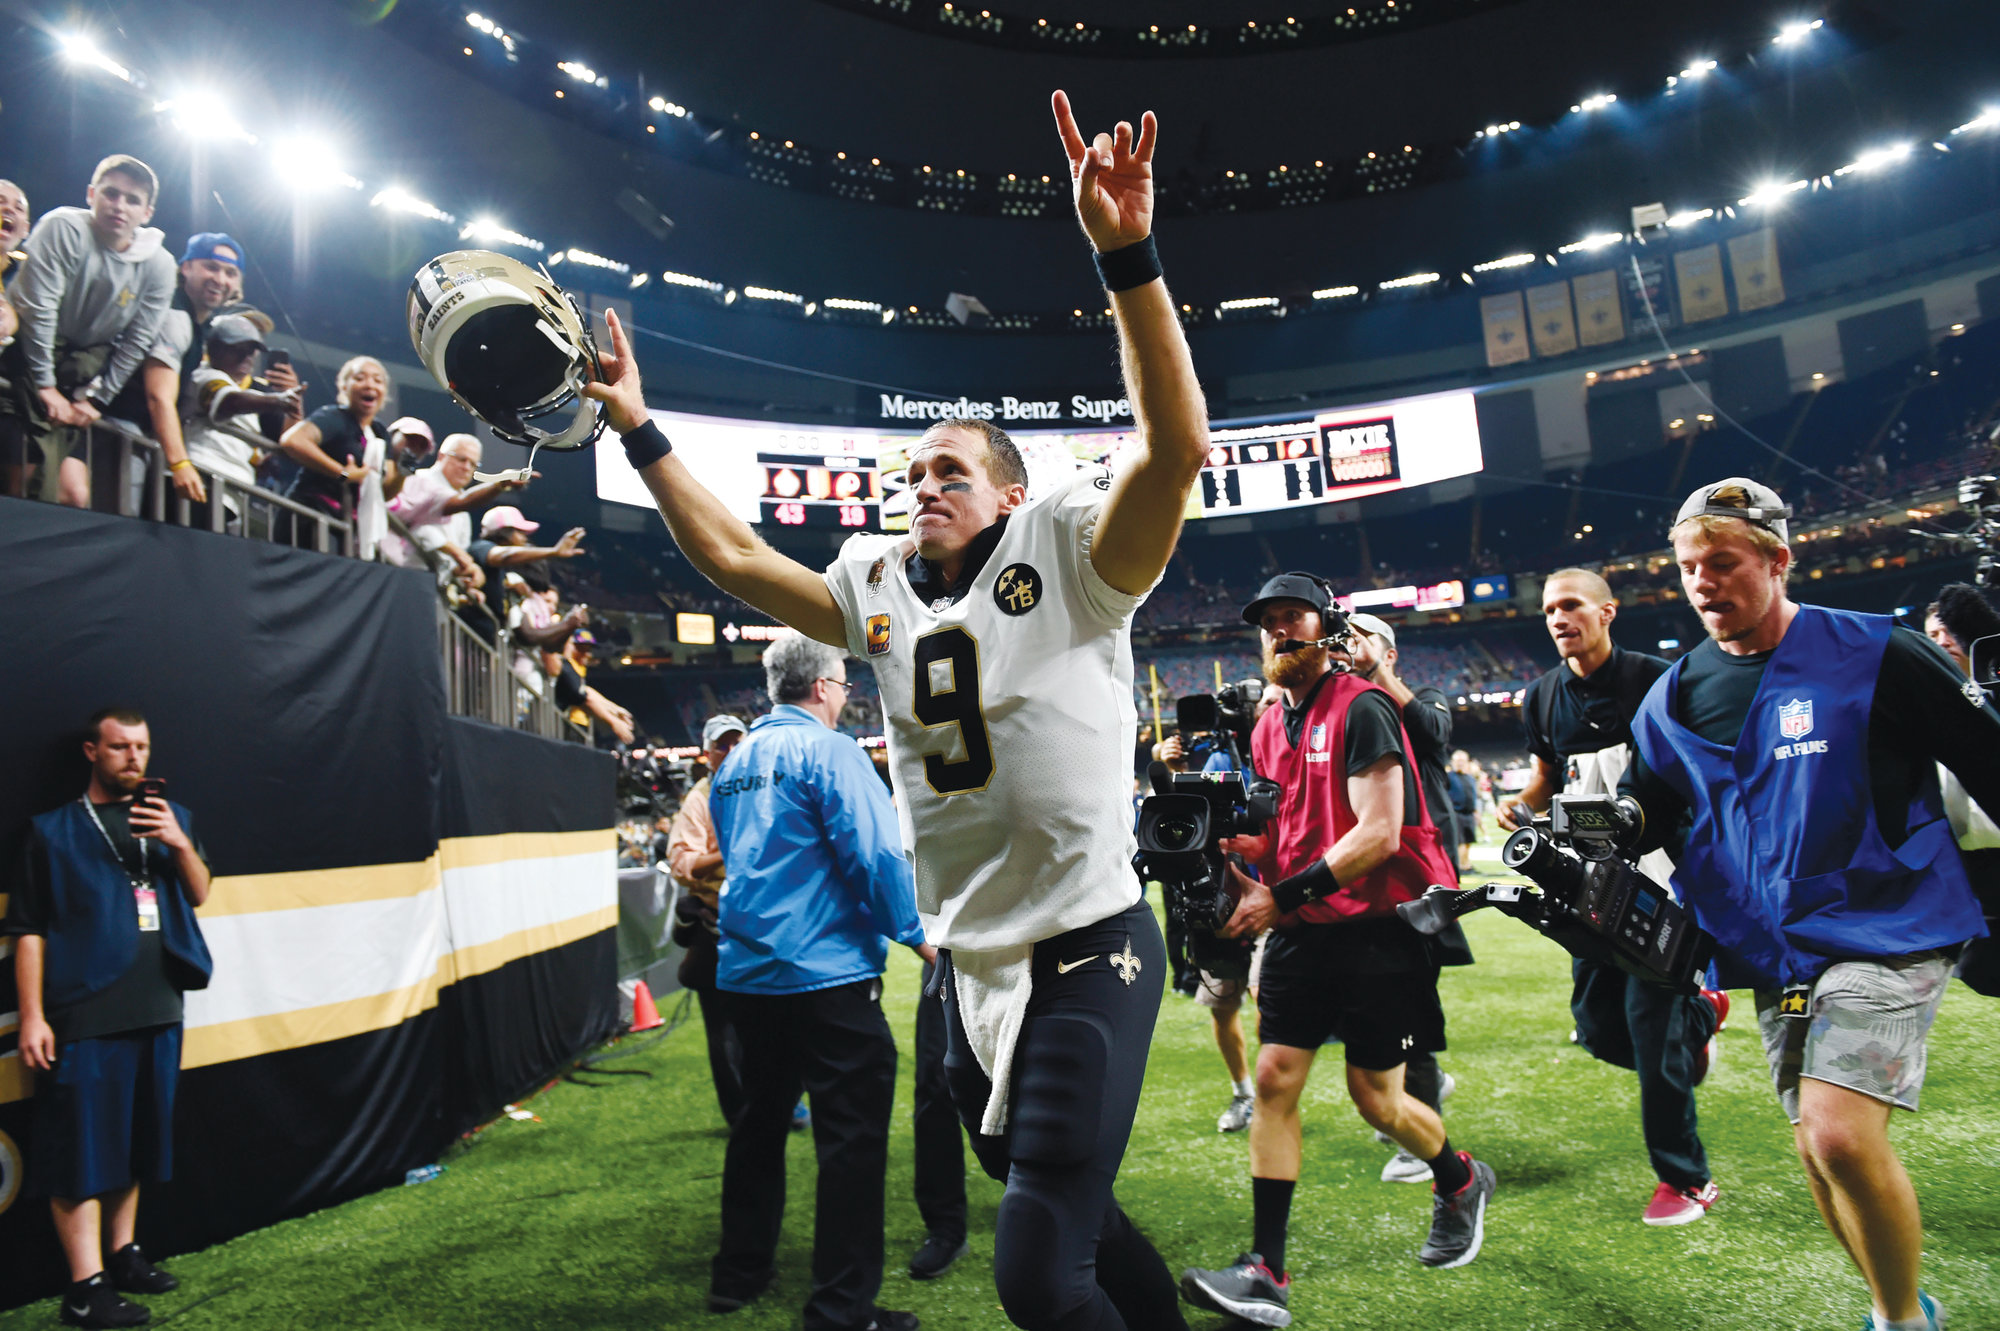 New Orleans Saints quarterback Drew Brees (9) acknowledges the crowd as he runs off the field after the Saints' game against the Washington Redskins in New Orleans on Monday. Brees broke the NFL all-time passing yards record during the game, and the Saints won 43-19.